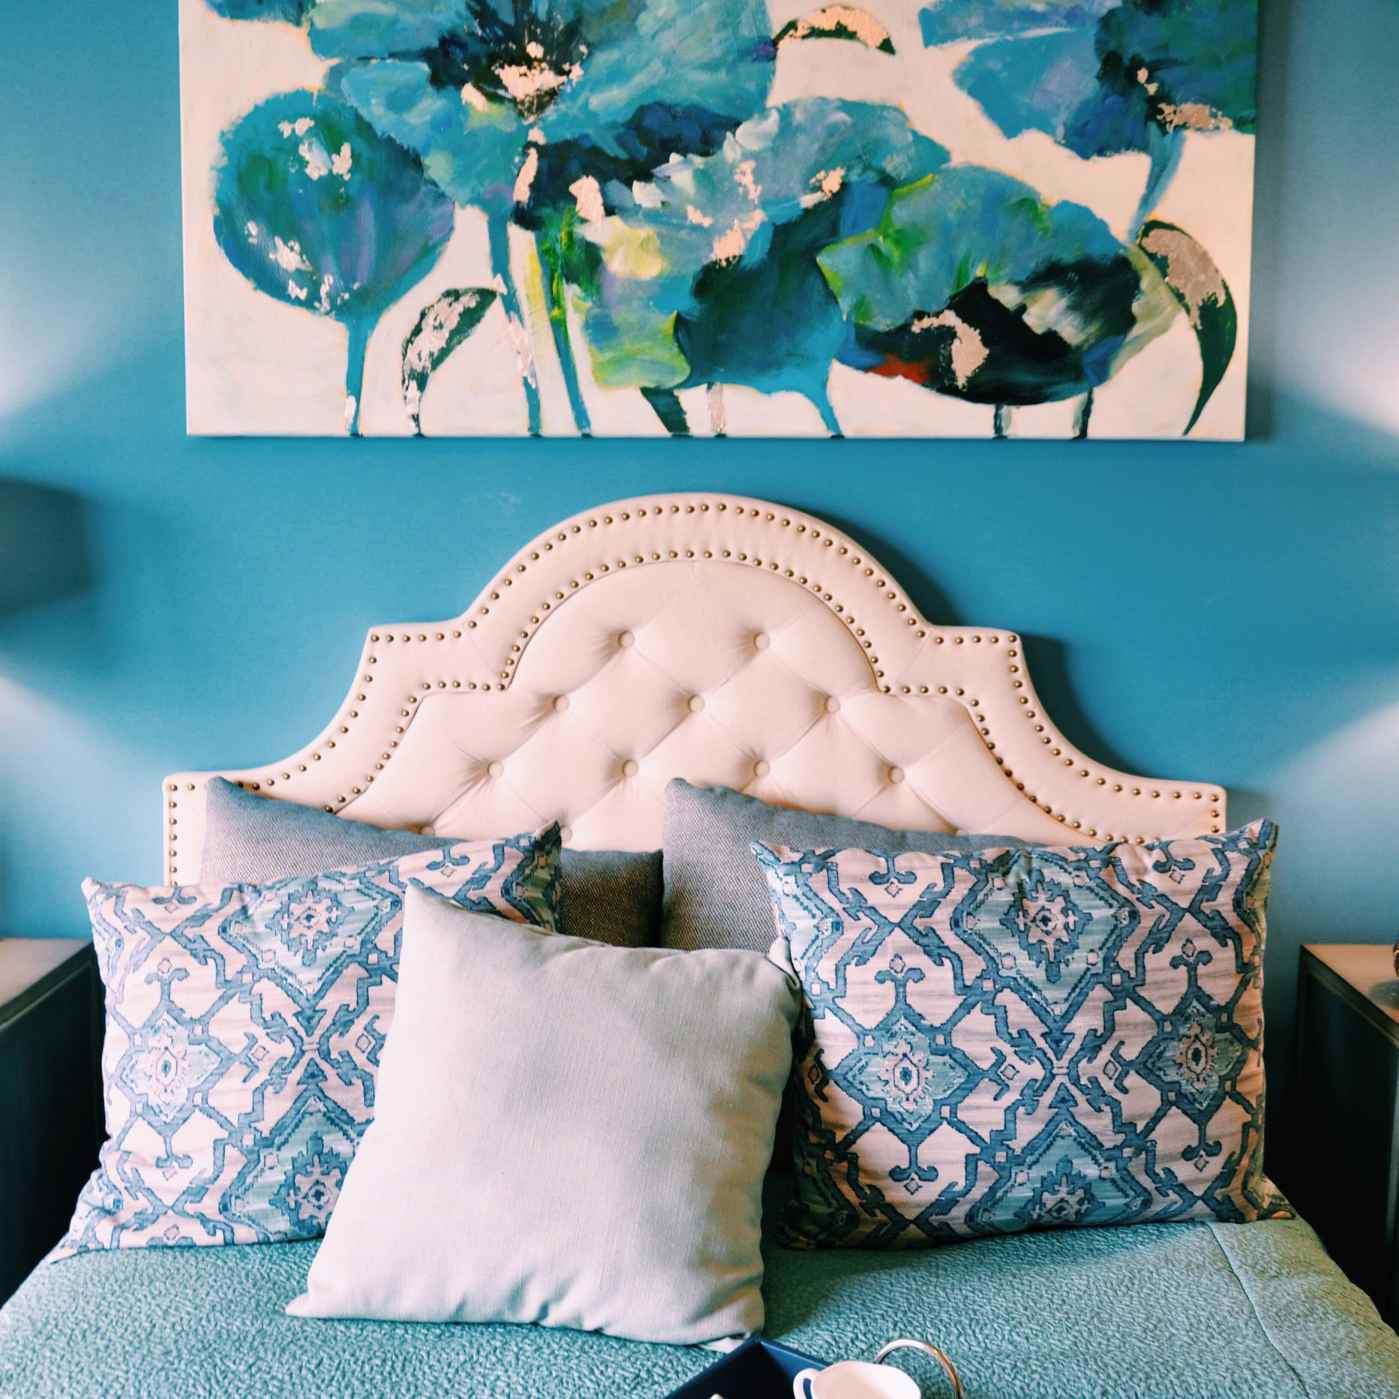 pop art bedroom decor.htm 10 ways to transform a boring bedroom  10 ways to transform a boring bedroom